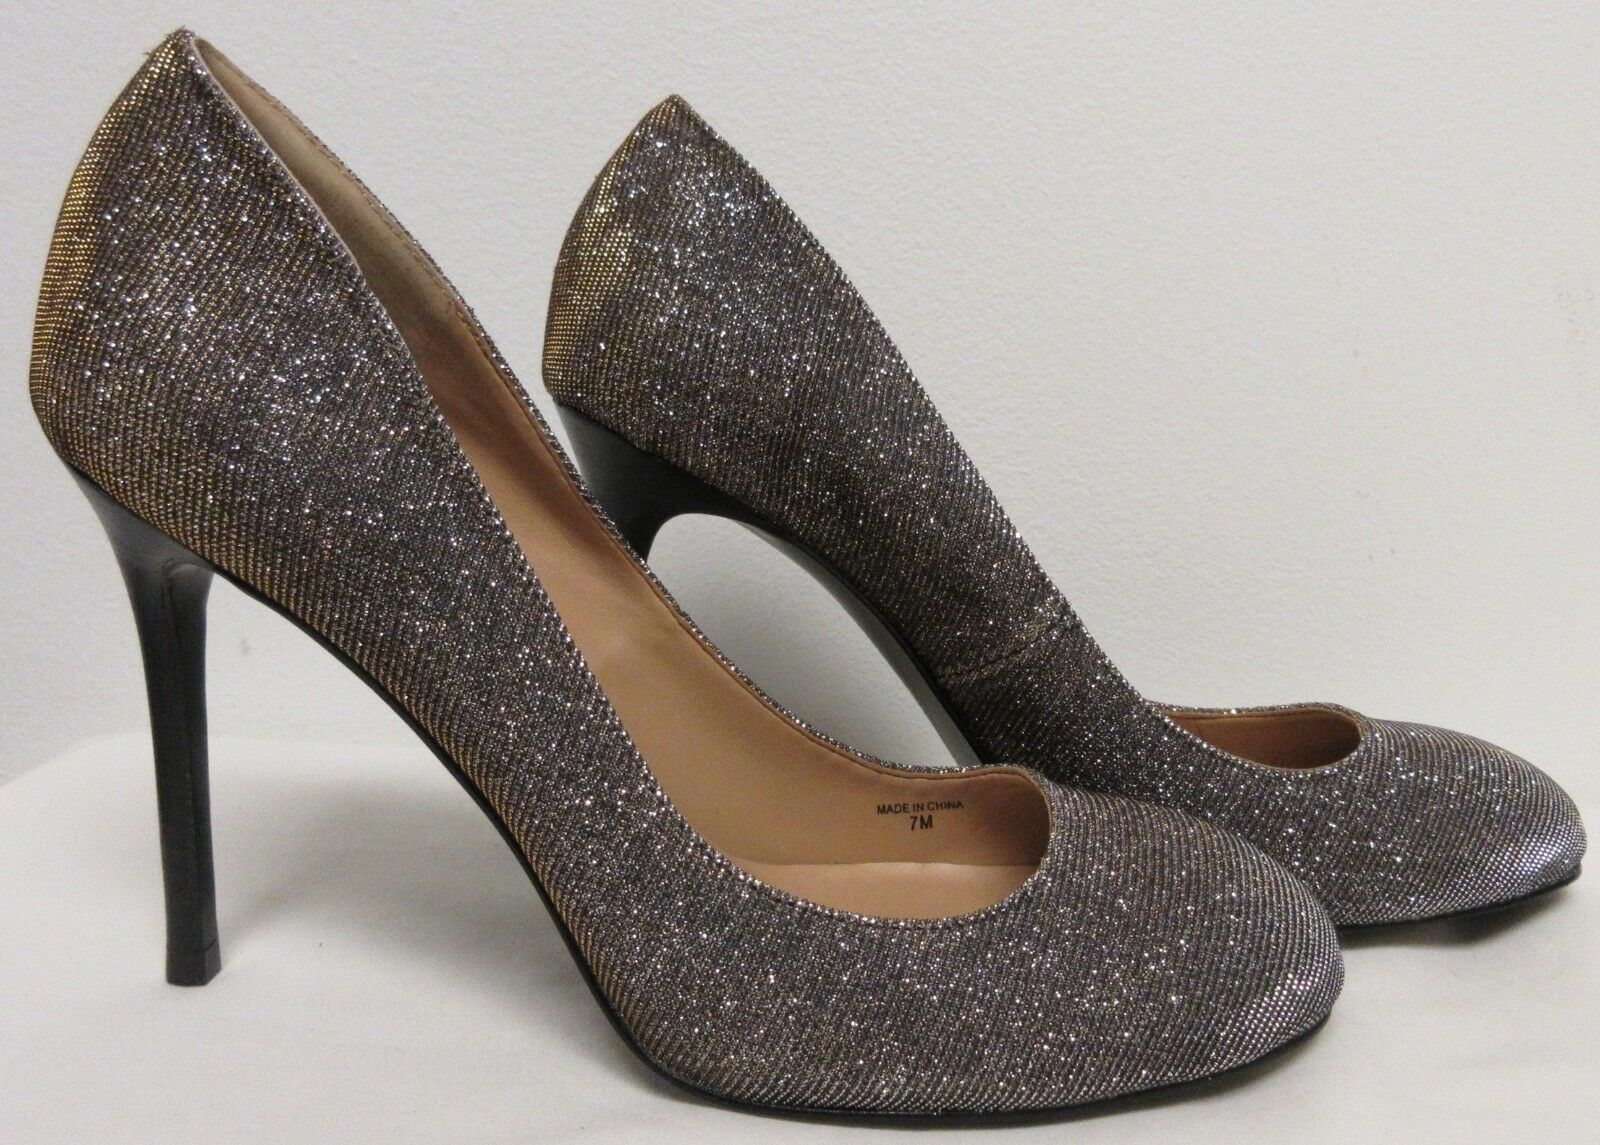 BANANA REPUBLIC HELLO SOLE MATE CLASSIC METALLIC SHEEN  STILETTO PUMPS 7.5